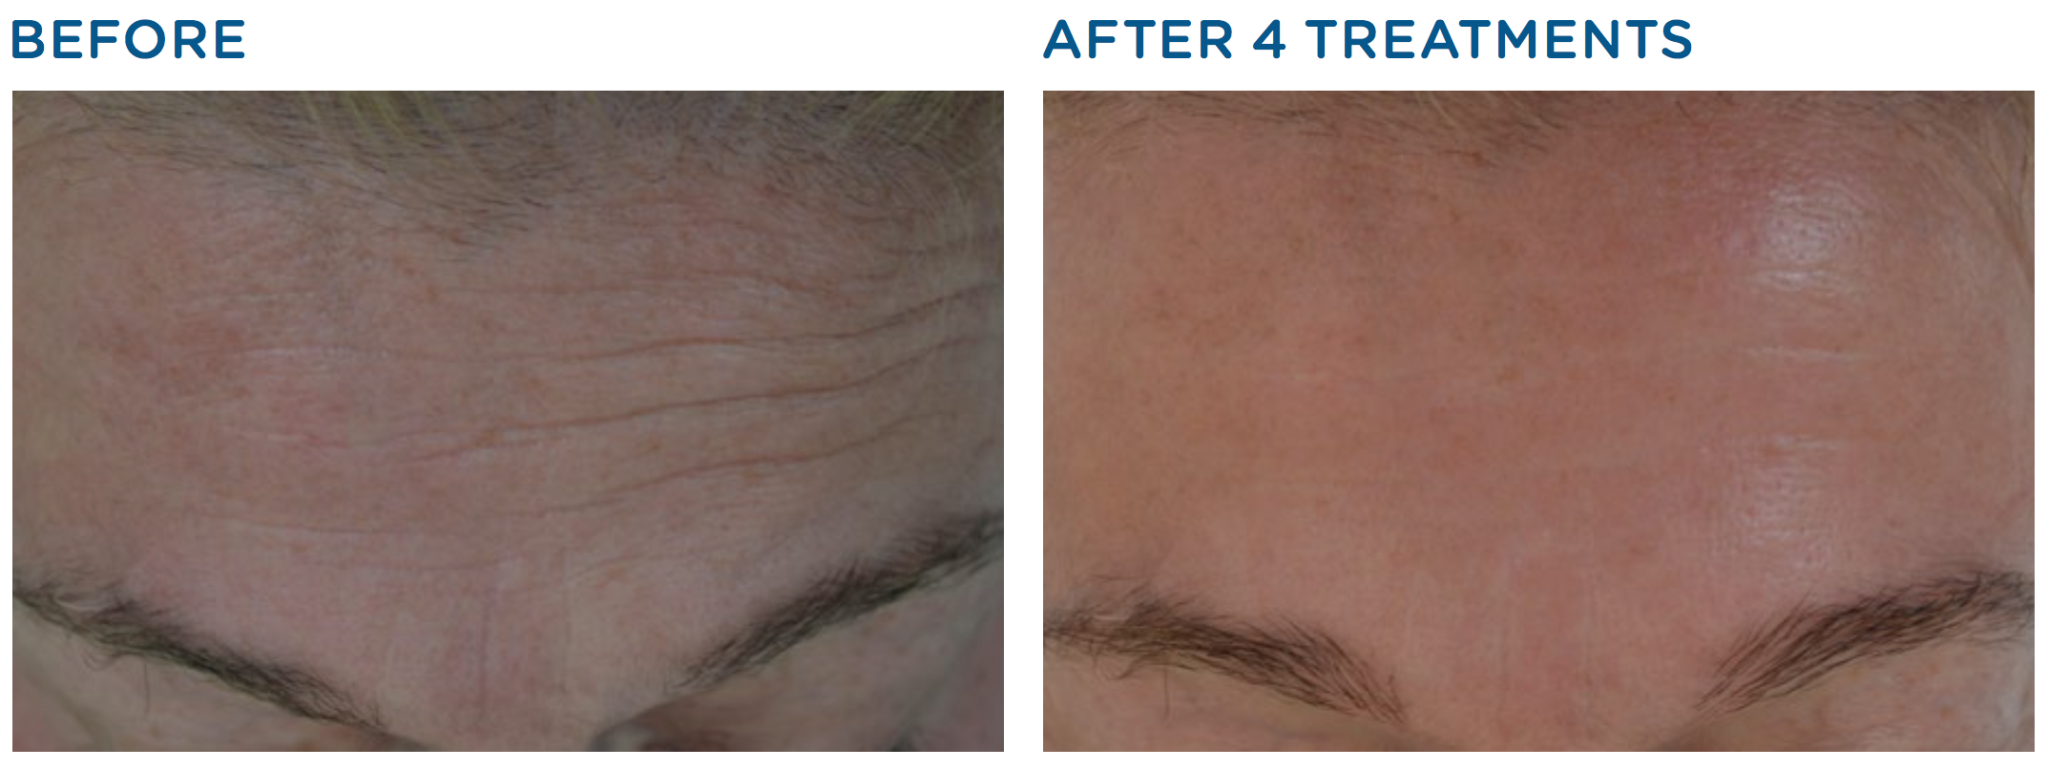 Exilis Ultra before and after